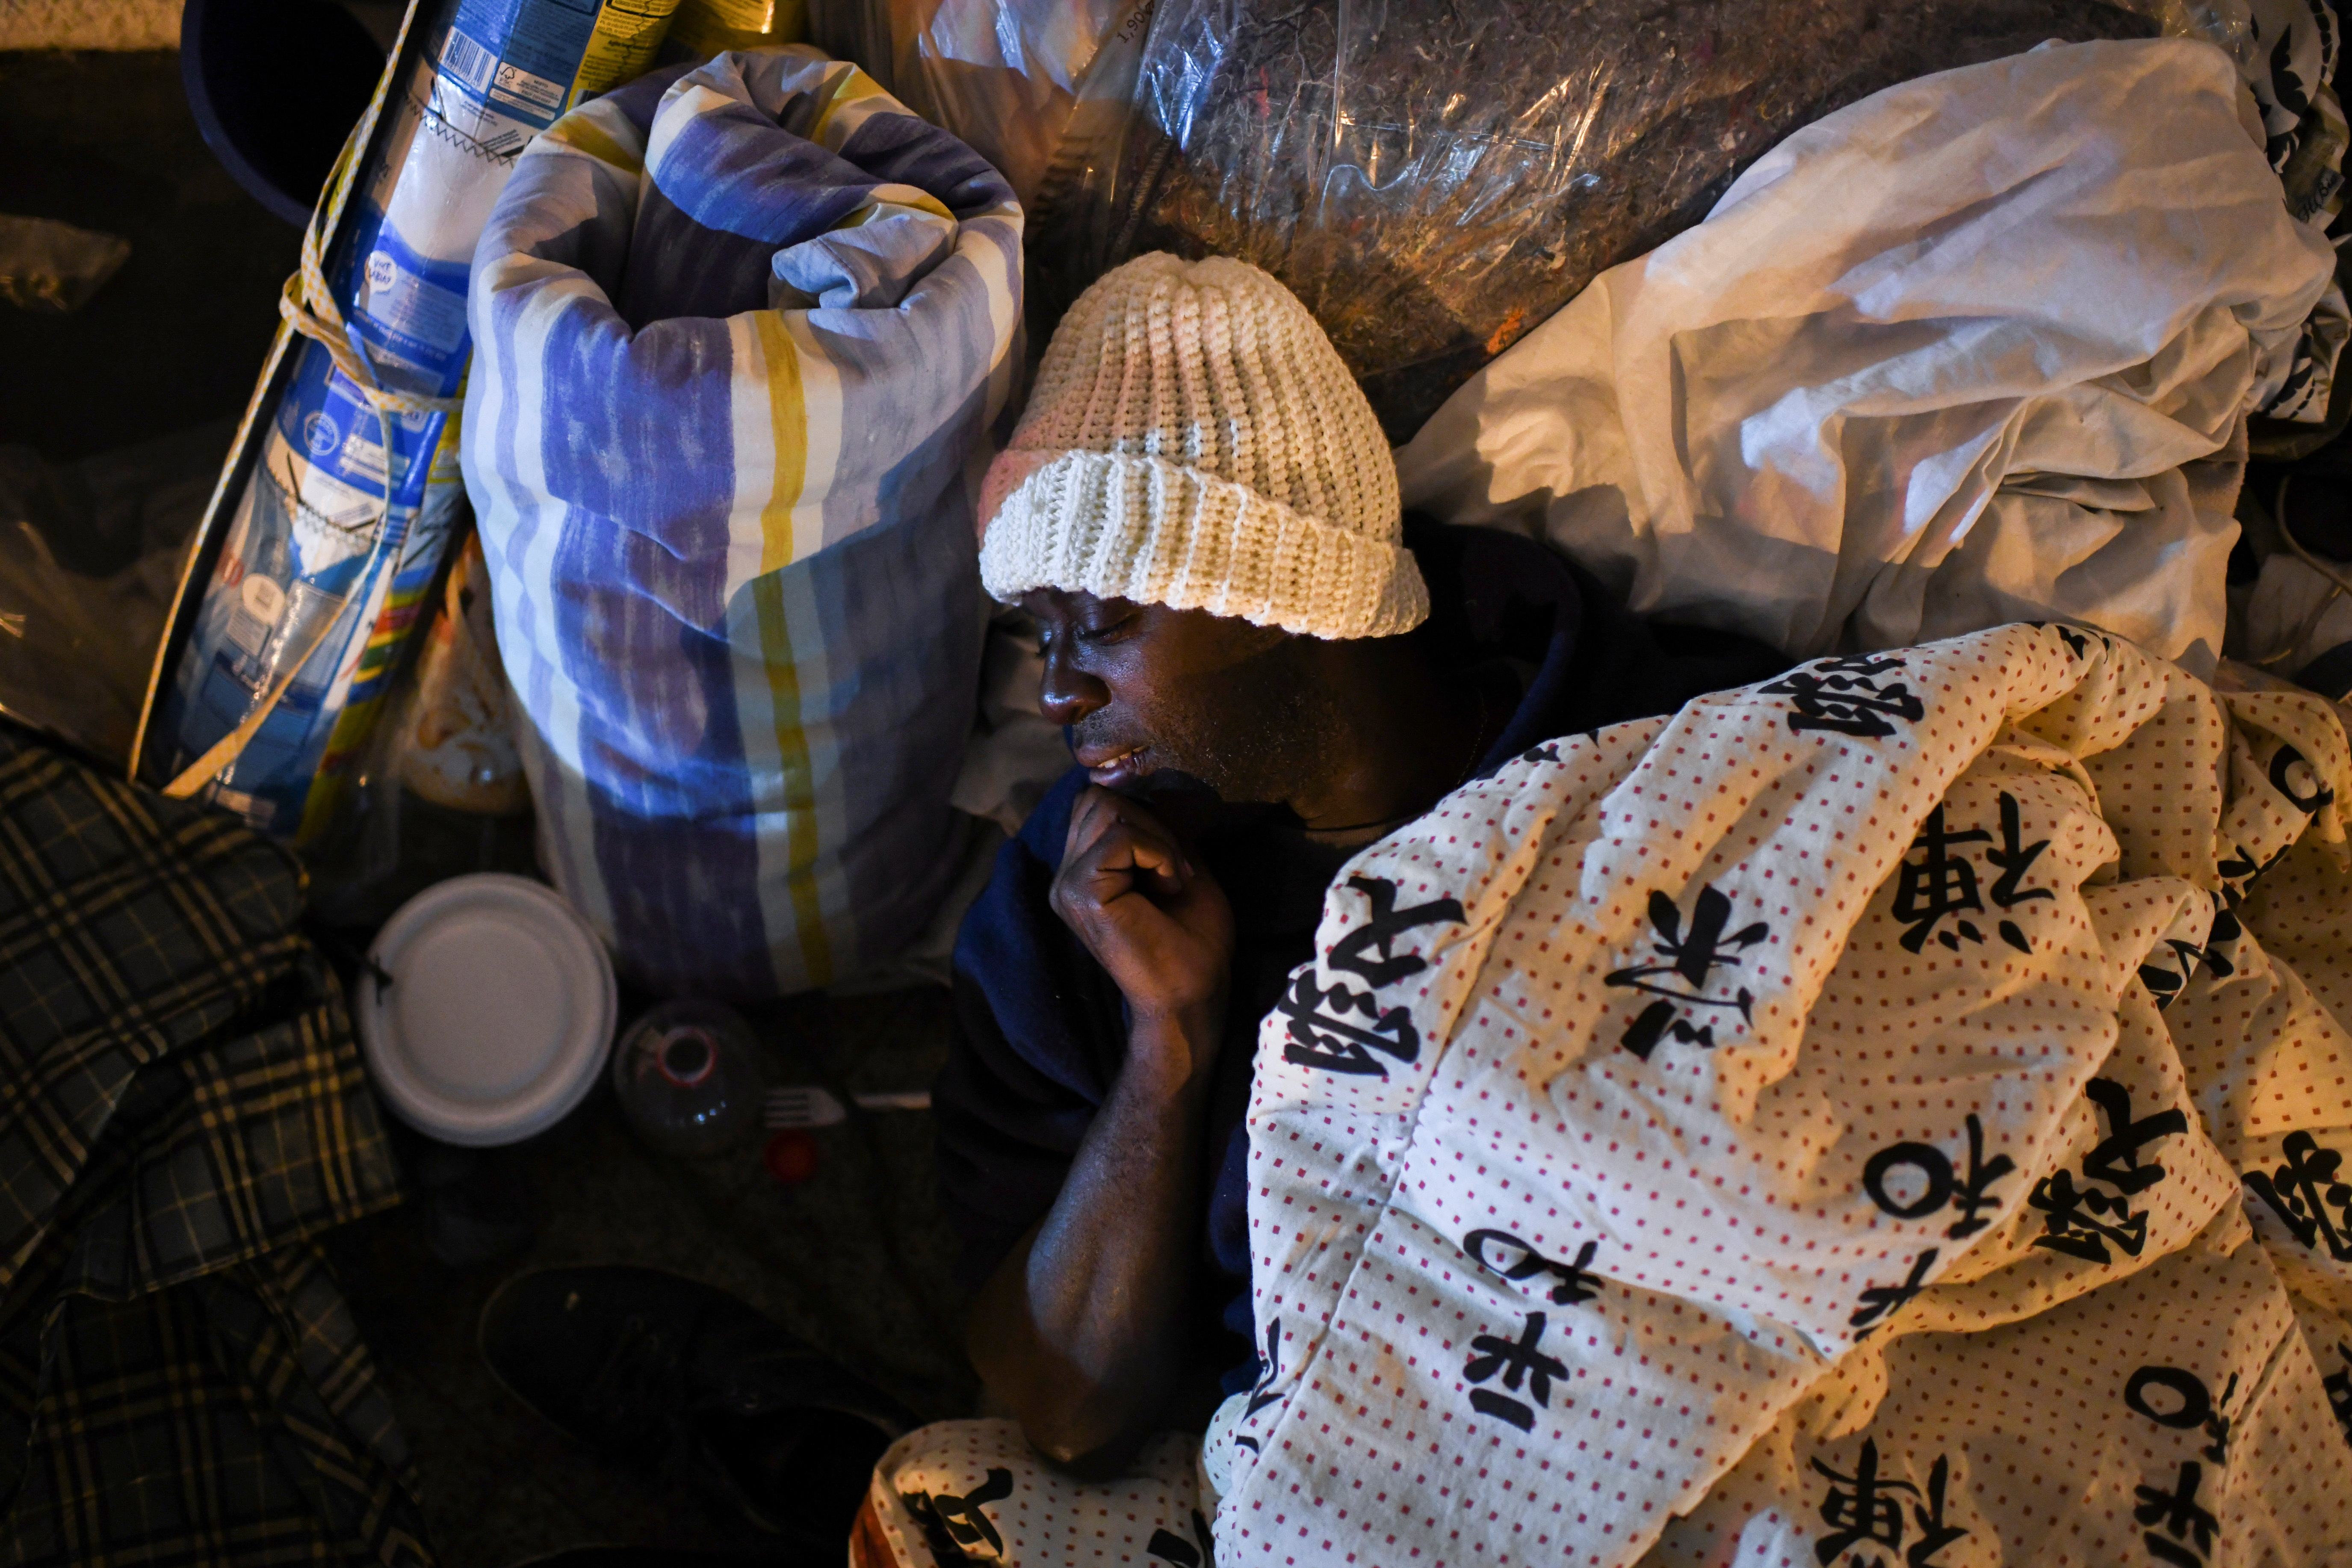 Marcus Vinicius, 27, a homeless man, is pictured as NGO doAcao distributes food and blankets to the homeless while an unusual cold hits Rio de Janeiro, Brazil, July 29, 2021.  REUTERS/Lucas Landau